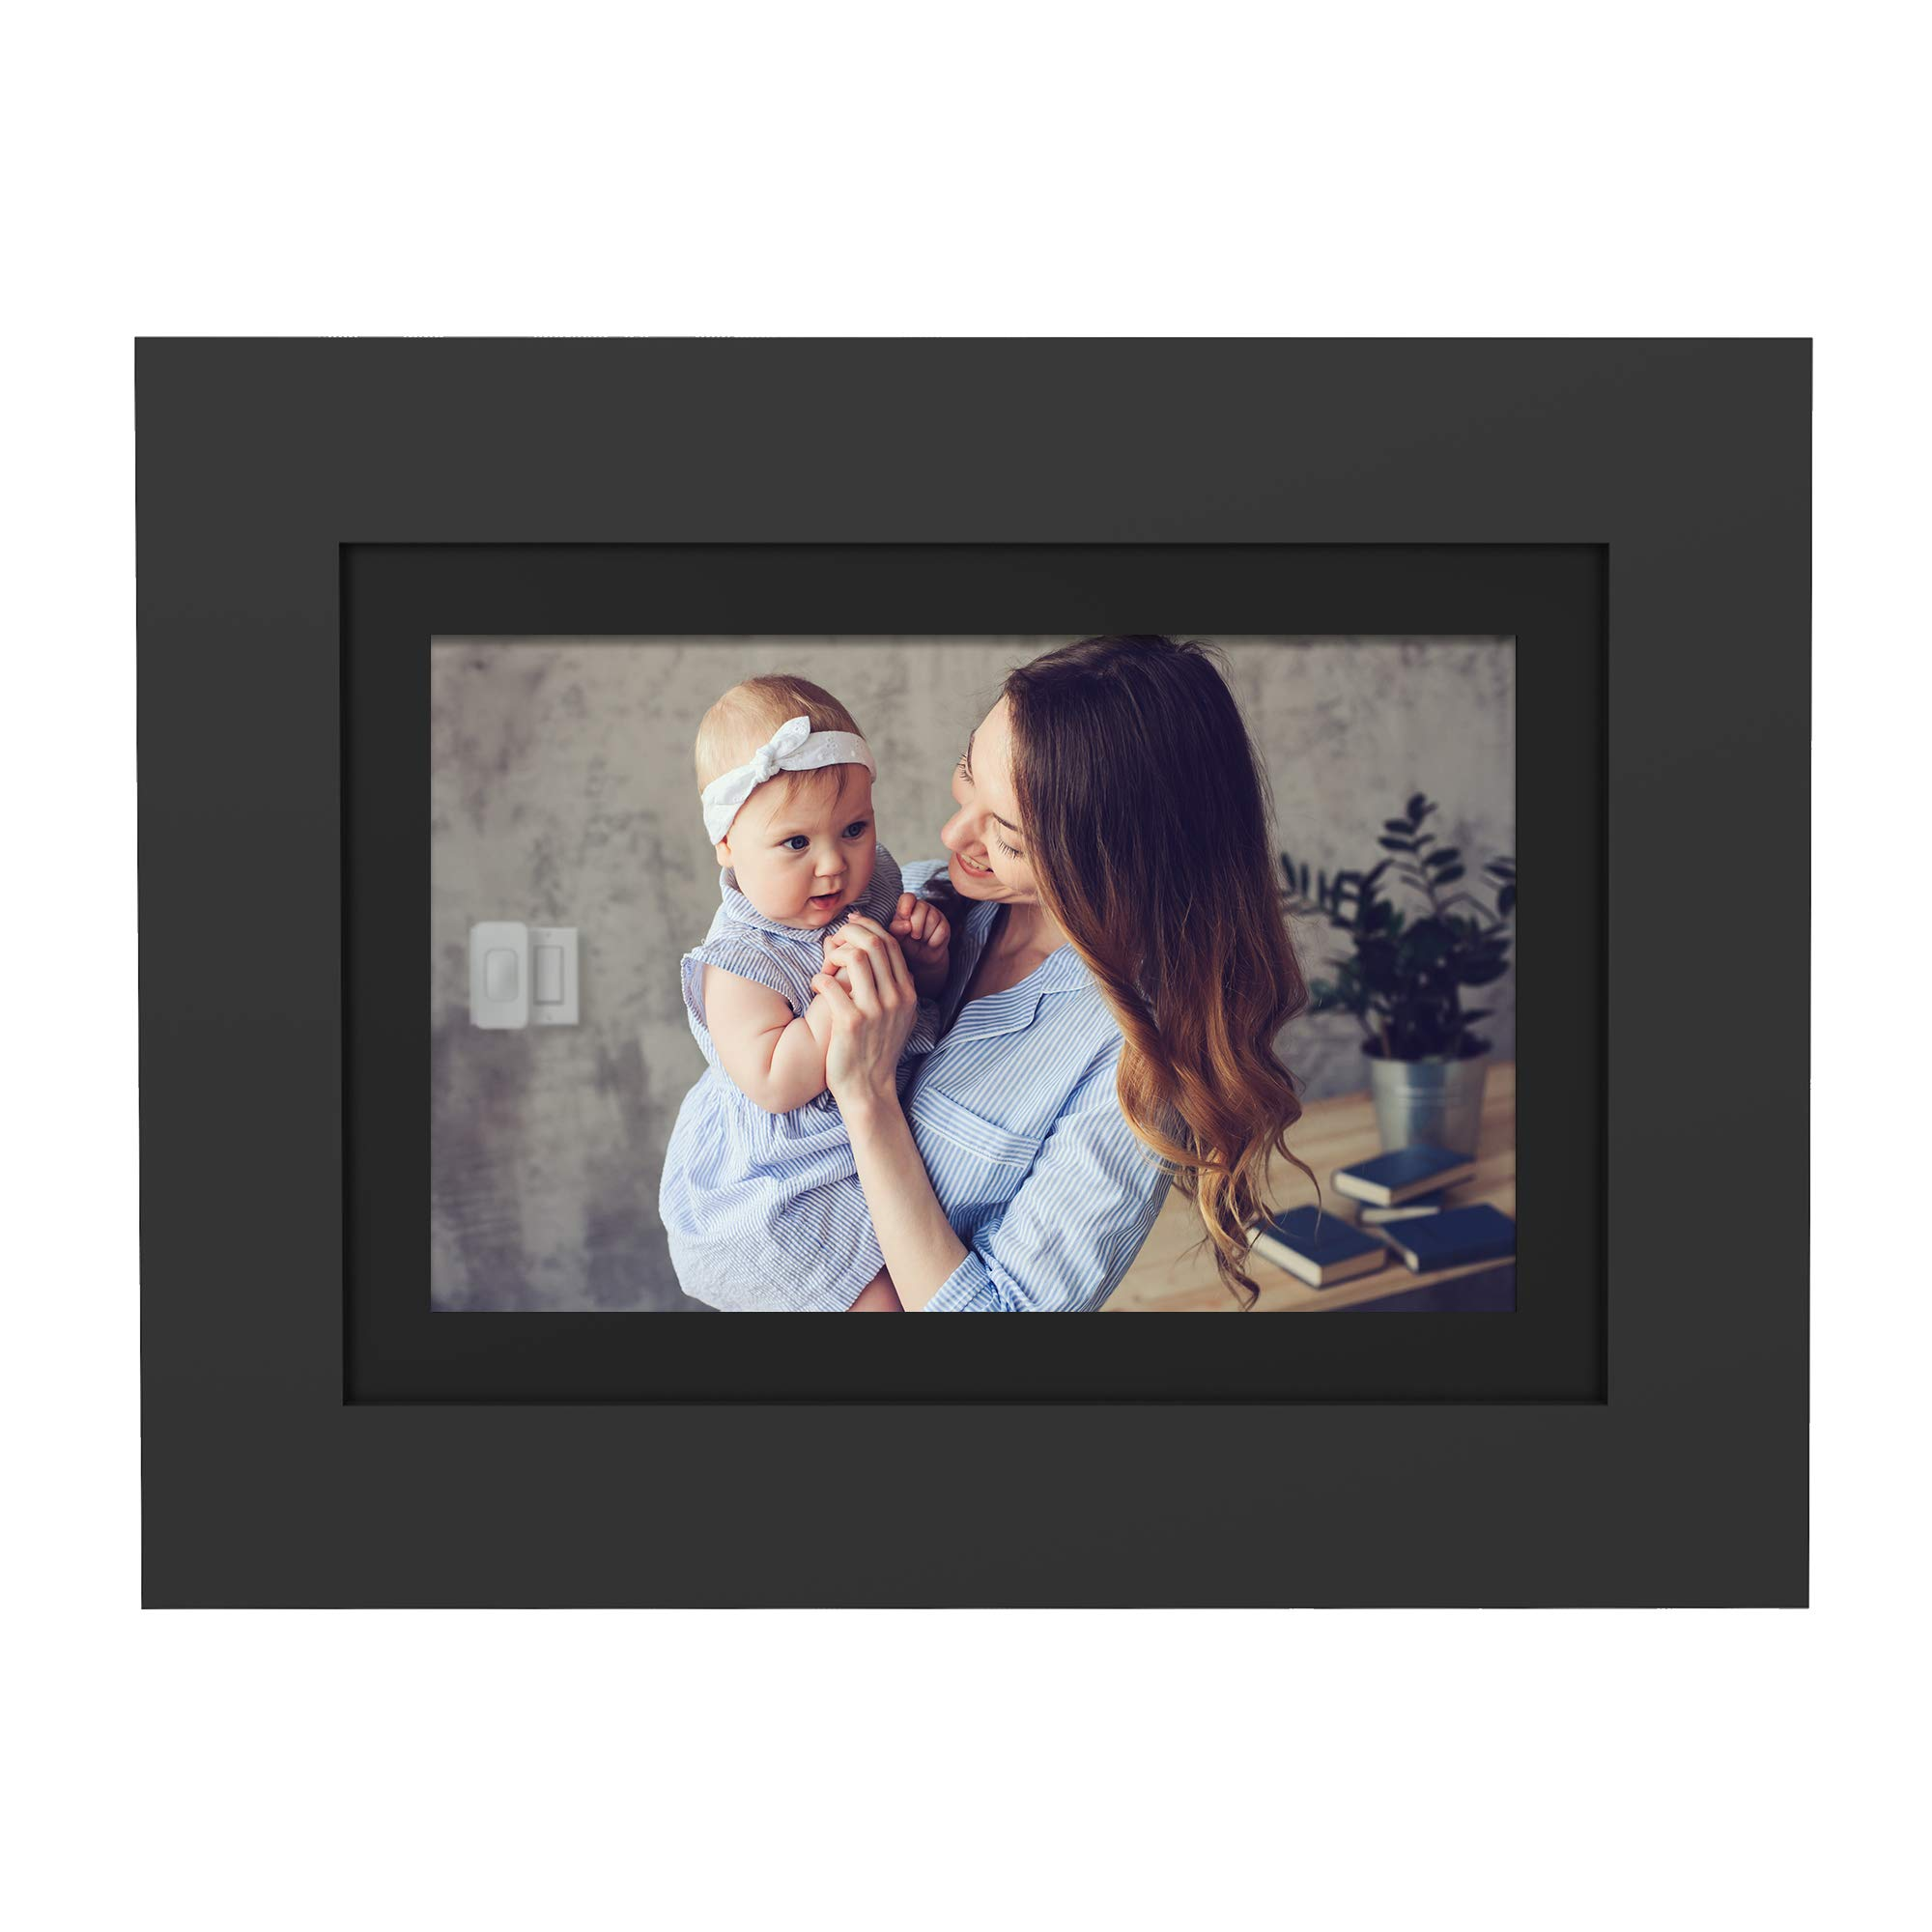 PhotoShare Friends and Family Cloud Frame 8'' Digital Photo Frame, Send Pics from Phone to Frame, Wi-Fi, 8 GB, Holds Over 1,000 Photos, HD, 1080P, Black/White Mattes, iOS, Android by SimplySmart Home